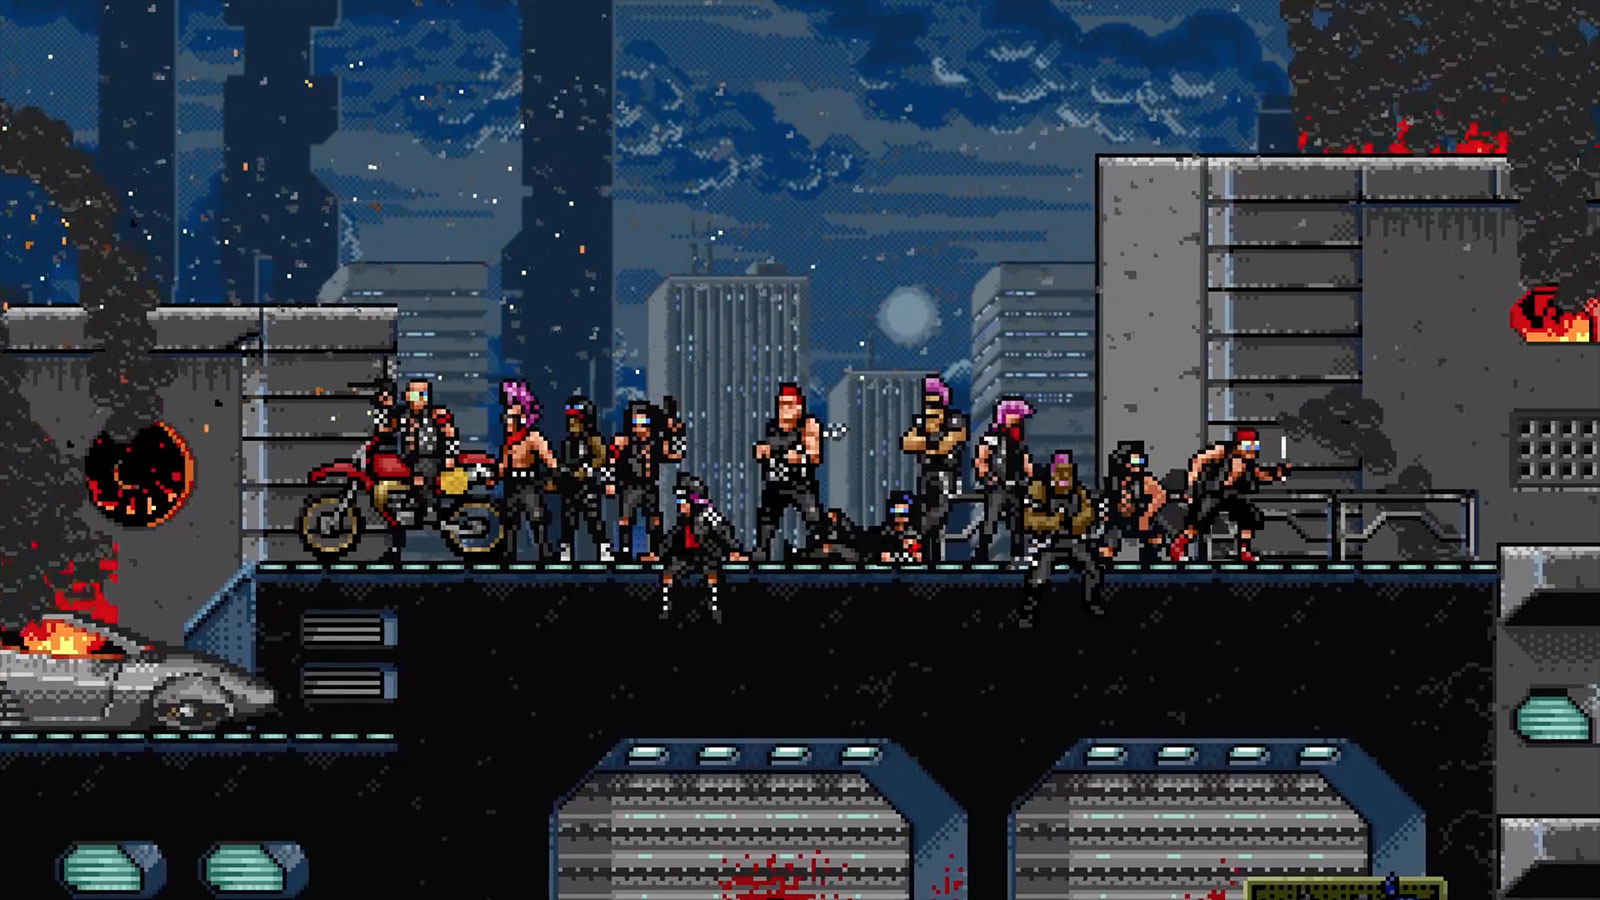 Coffee Stain Studios is publishing the retro side-scrolling shooter Huntdown